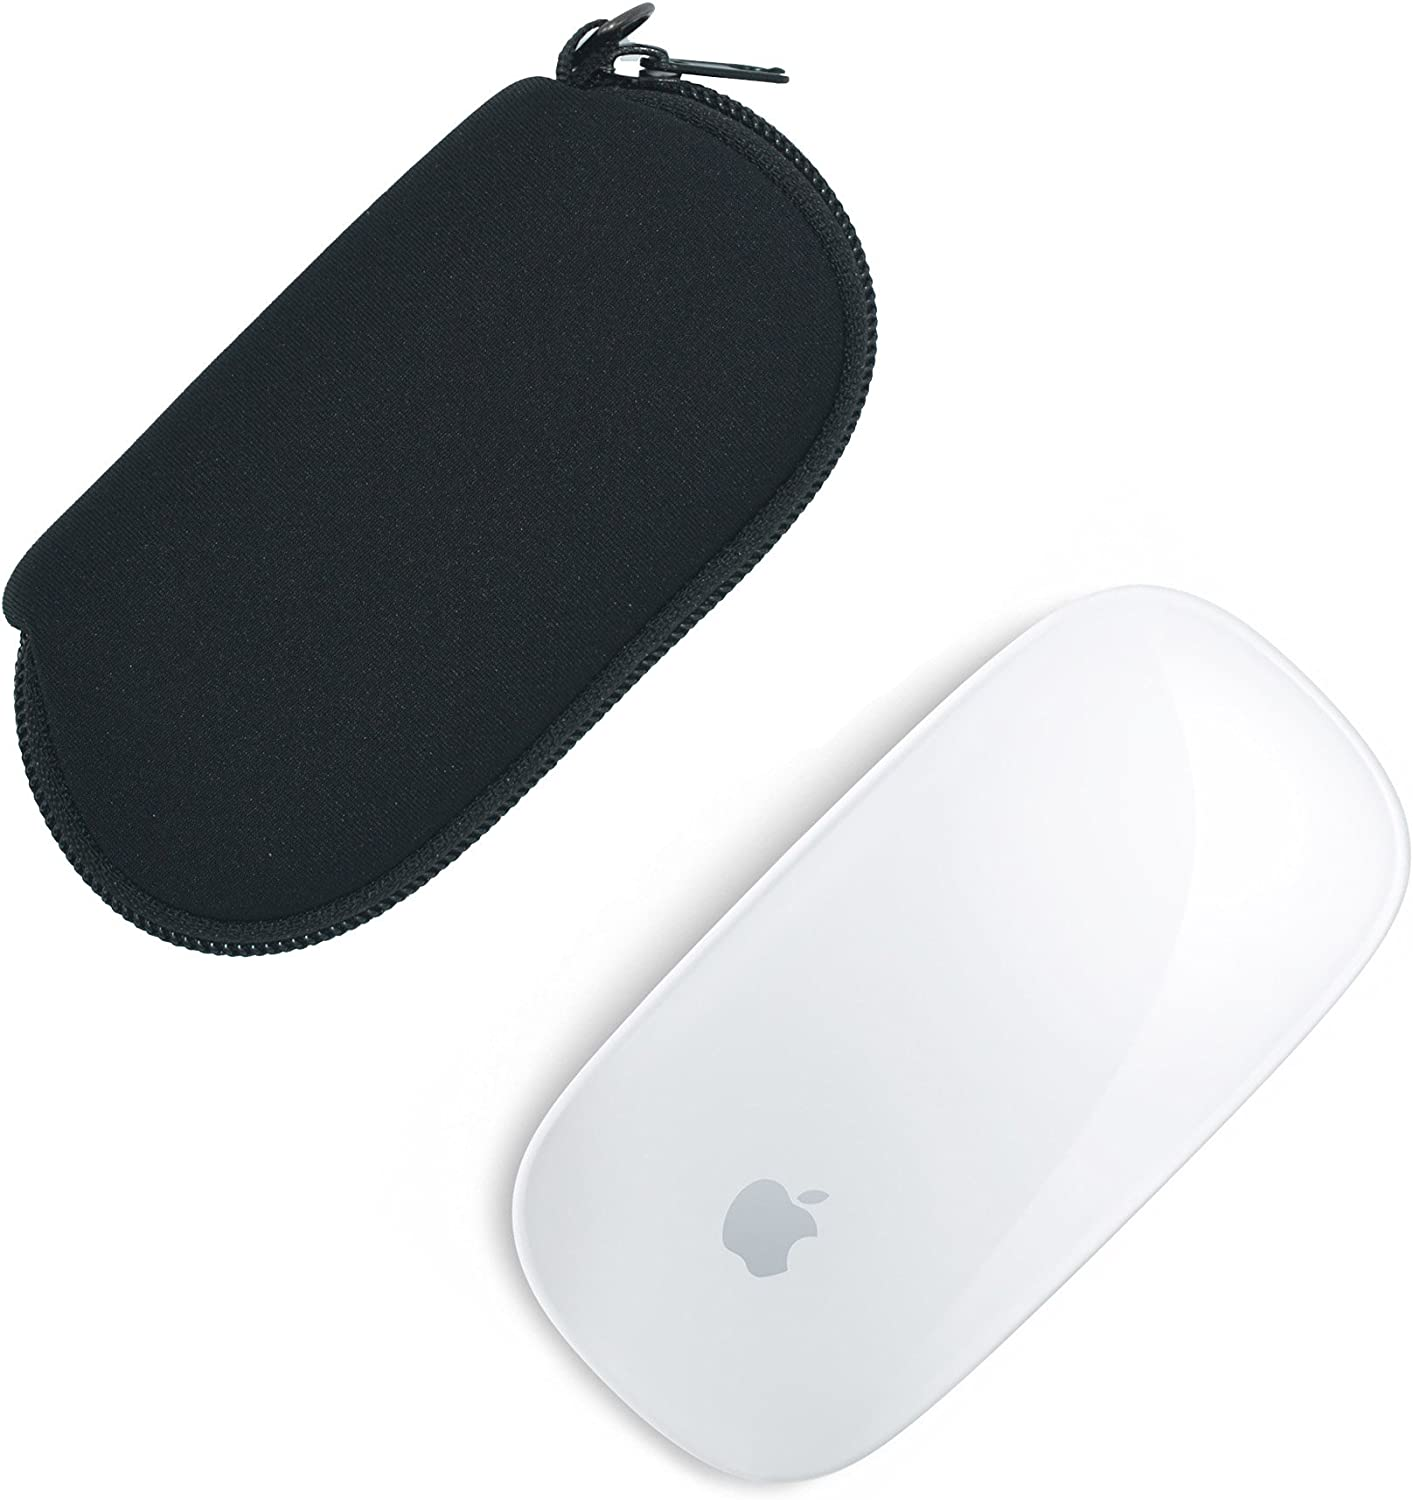 Case Wonder 2 Piezas de Neopreno de Almacenamiento Llevar Bolso Caso de la Caja Guardapolvo para Apple Magic Mouse (I y II de 2da generación) Ratón inalámbrico Bluetooth